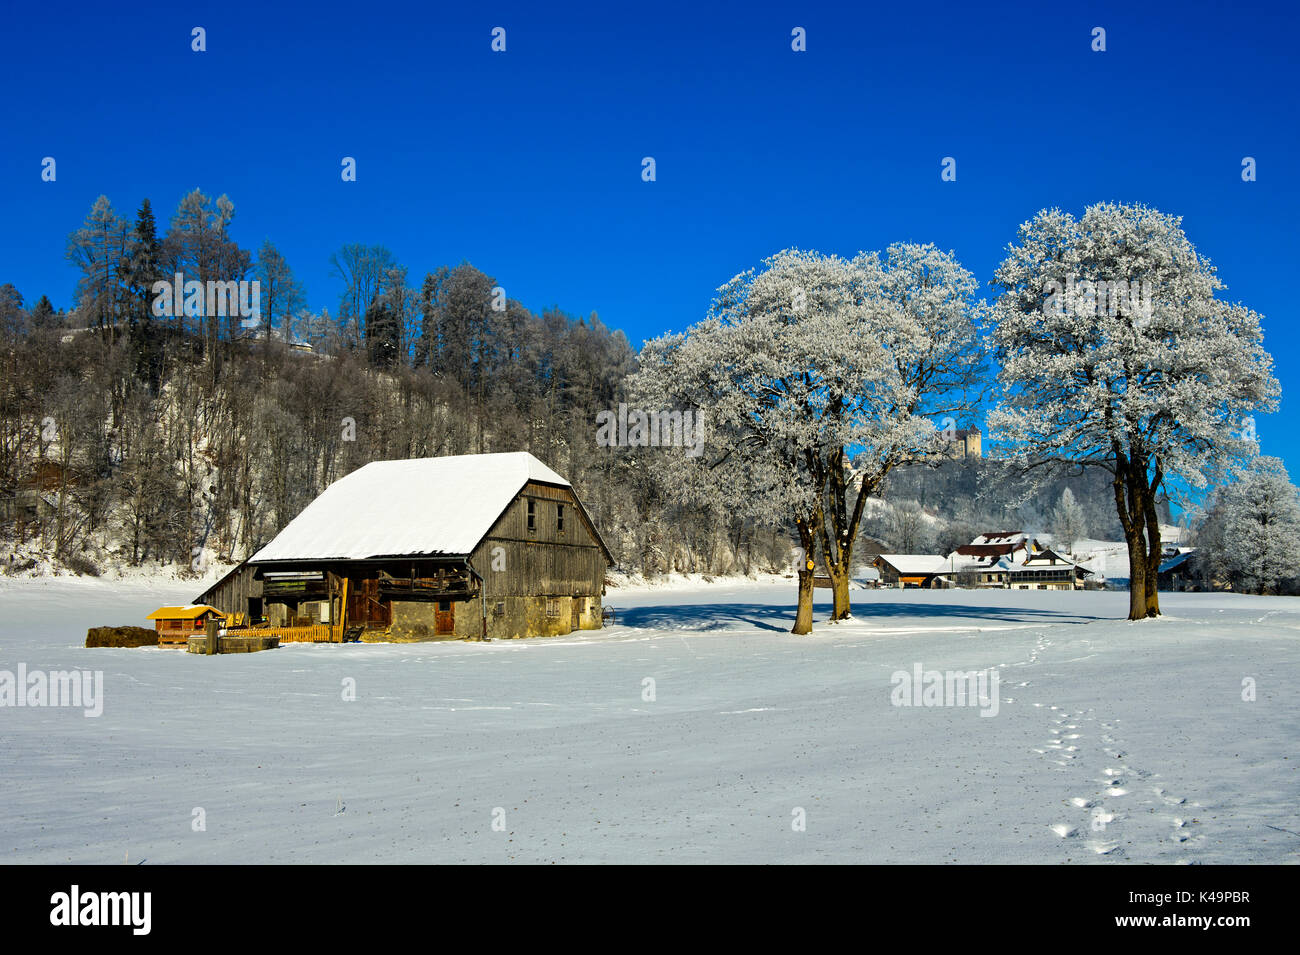 Frosty Trees And Farm Building On A Cold Winter Day In The La Gruyere Region, Gruyeres, Switzerland - Stock Image